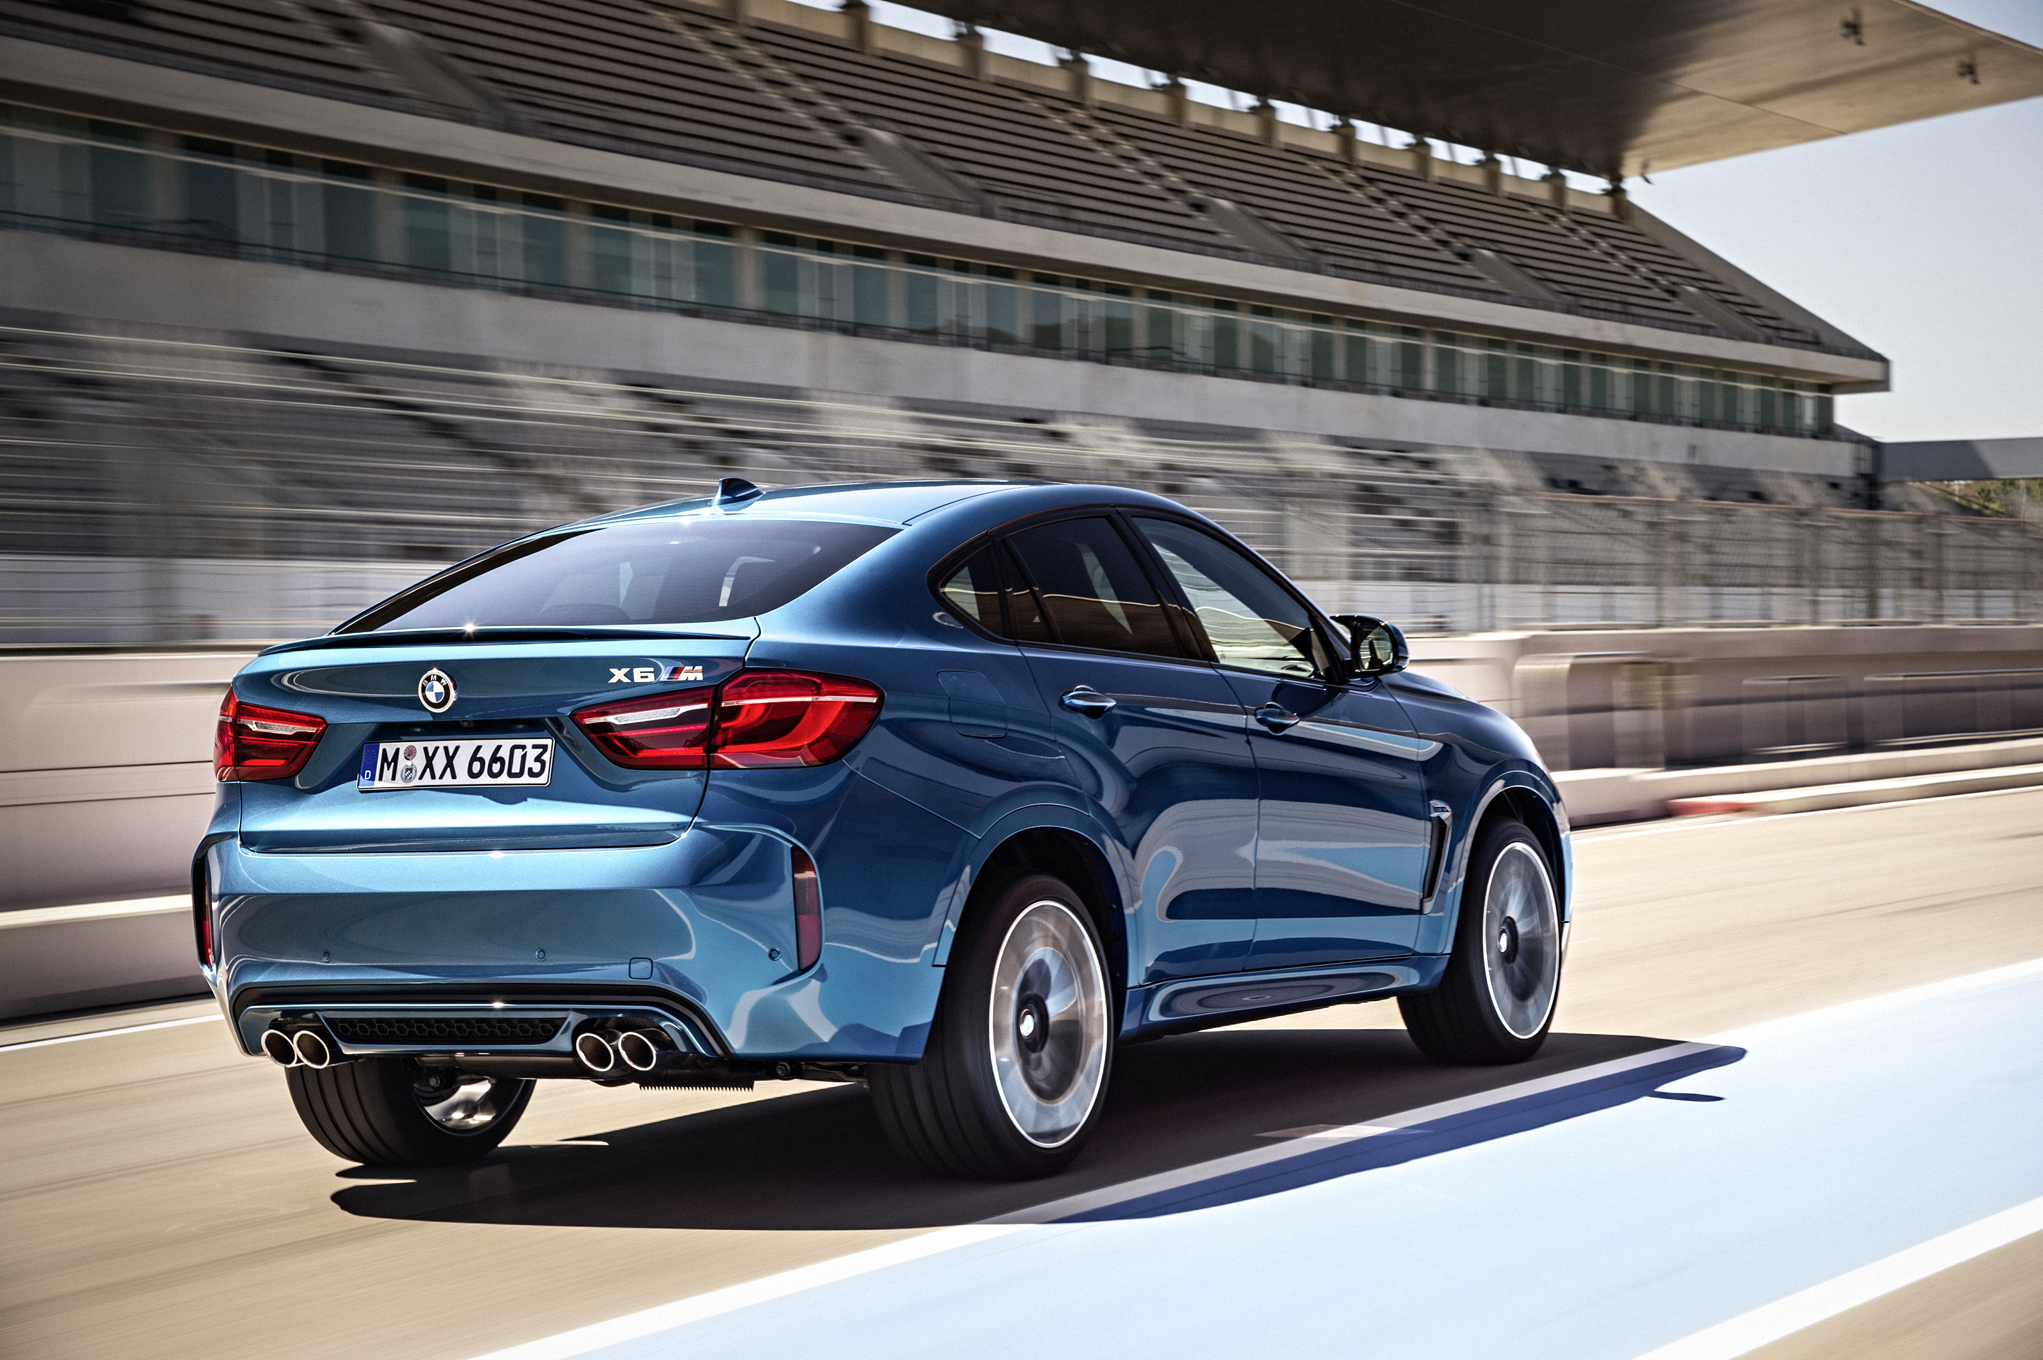 Remarkable 2015 Bmw X6 M Review Wiring 101 Kniepimsautoservicenl